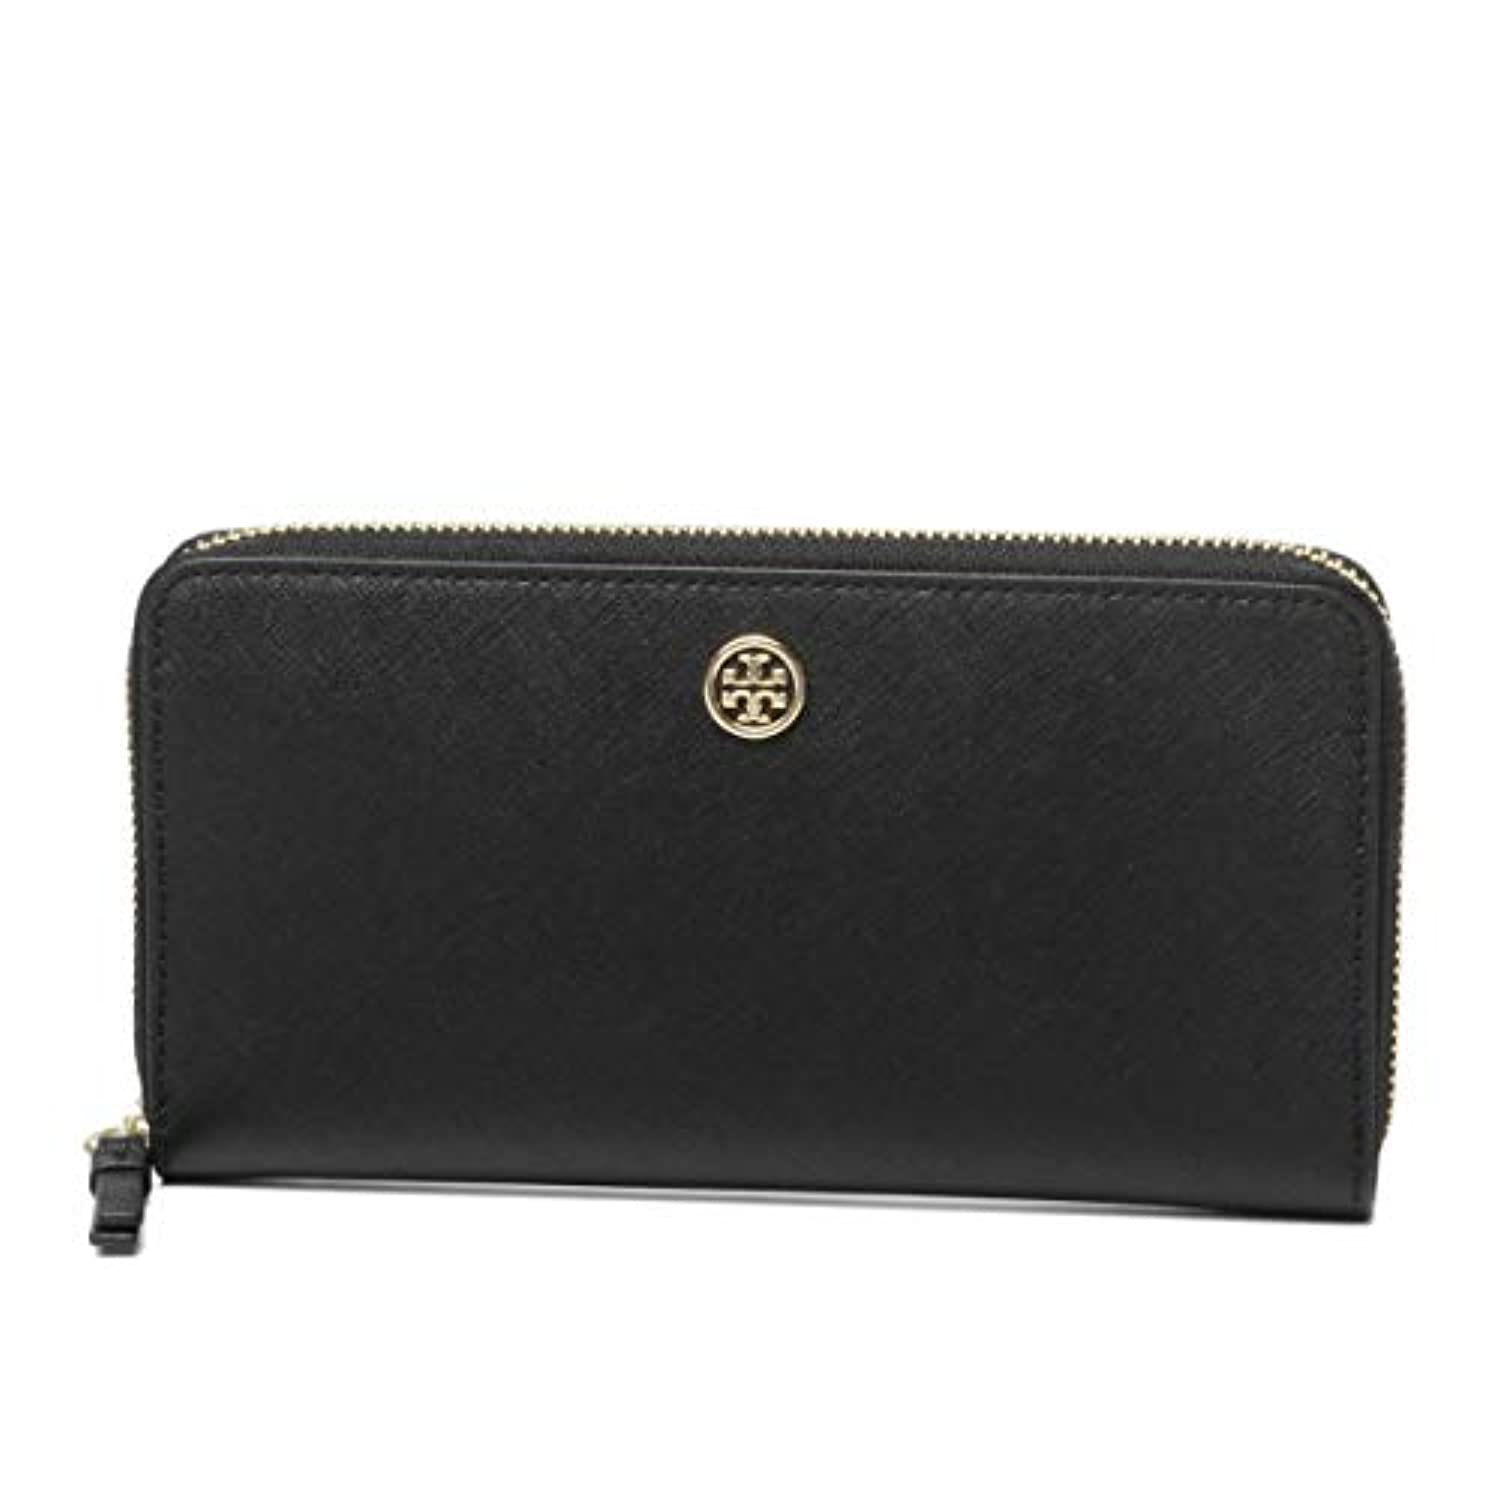 (トリー バーチ) TORY BURCH ROBINSON ZIP CONTINENTAL WALLET ラウンド長札入財布 #45254 018 BLACK/ROYAL NAVY 並行輸入品